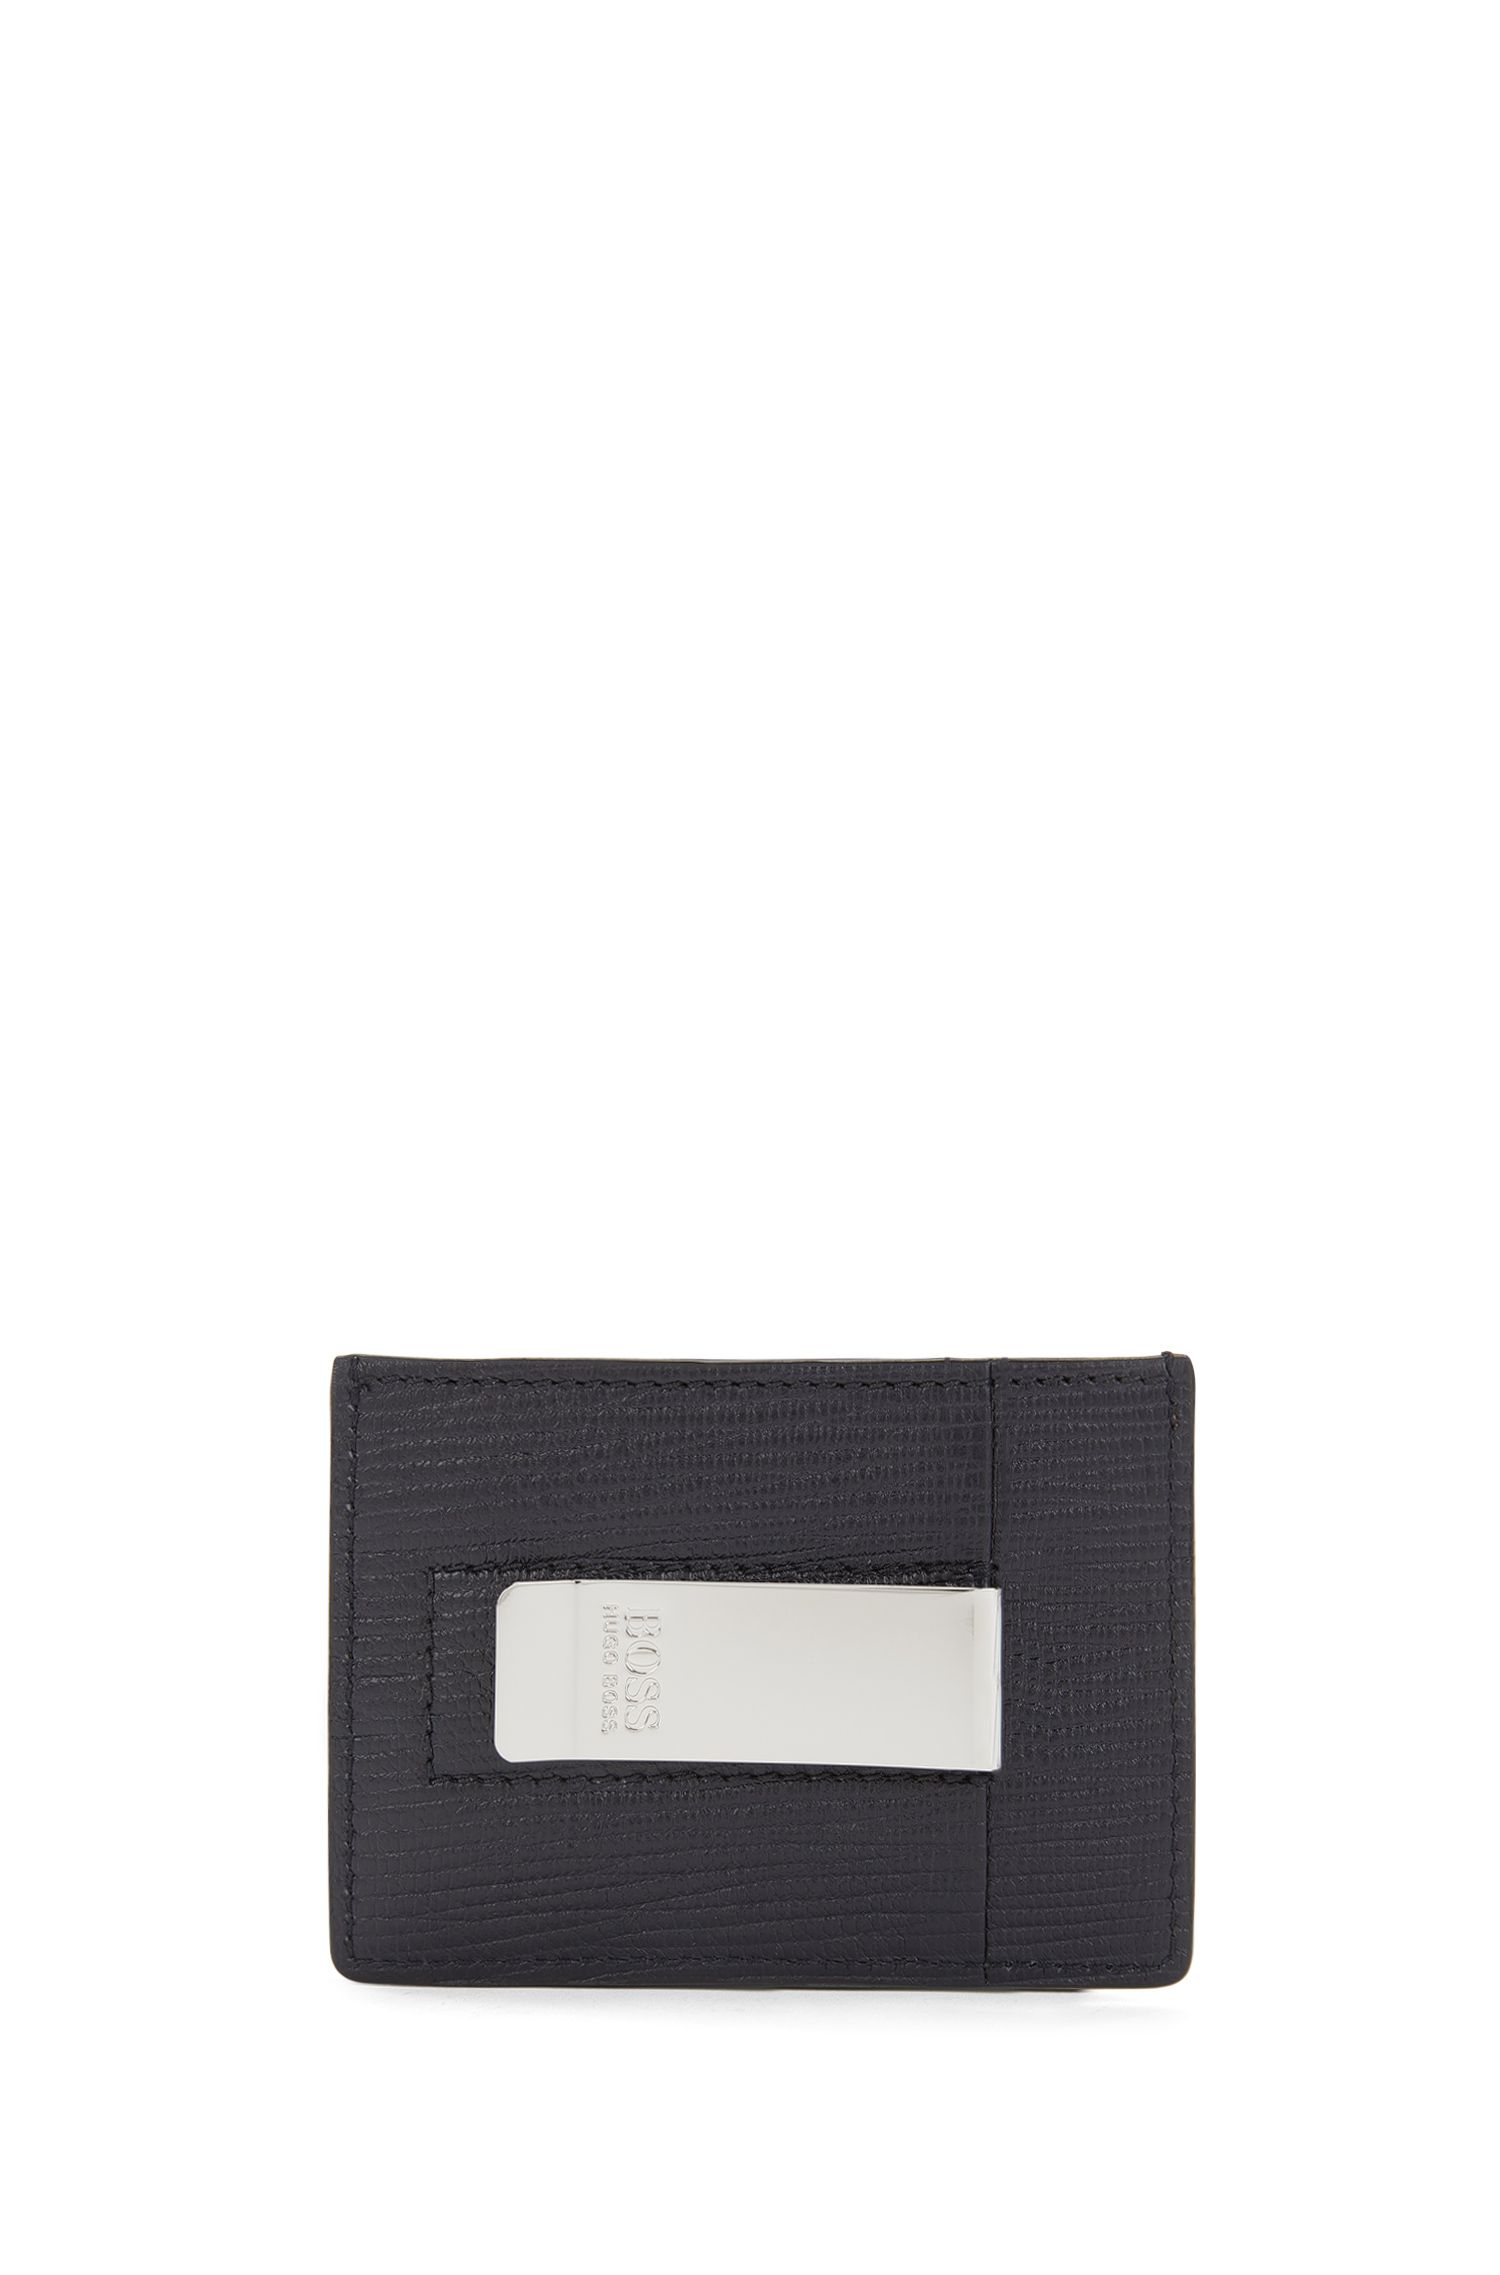 Card Holder With Money Clip | Timeless Money Clip